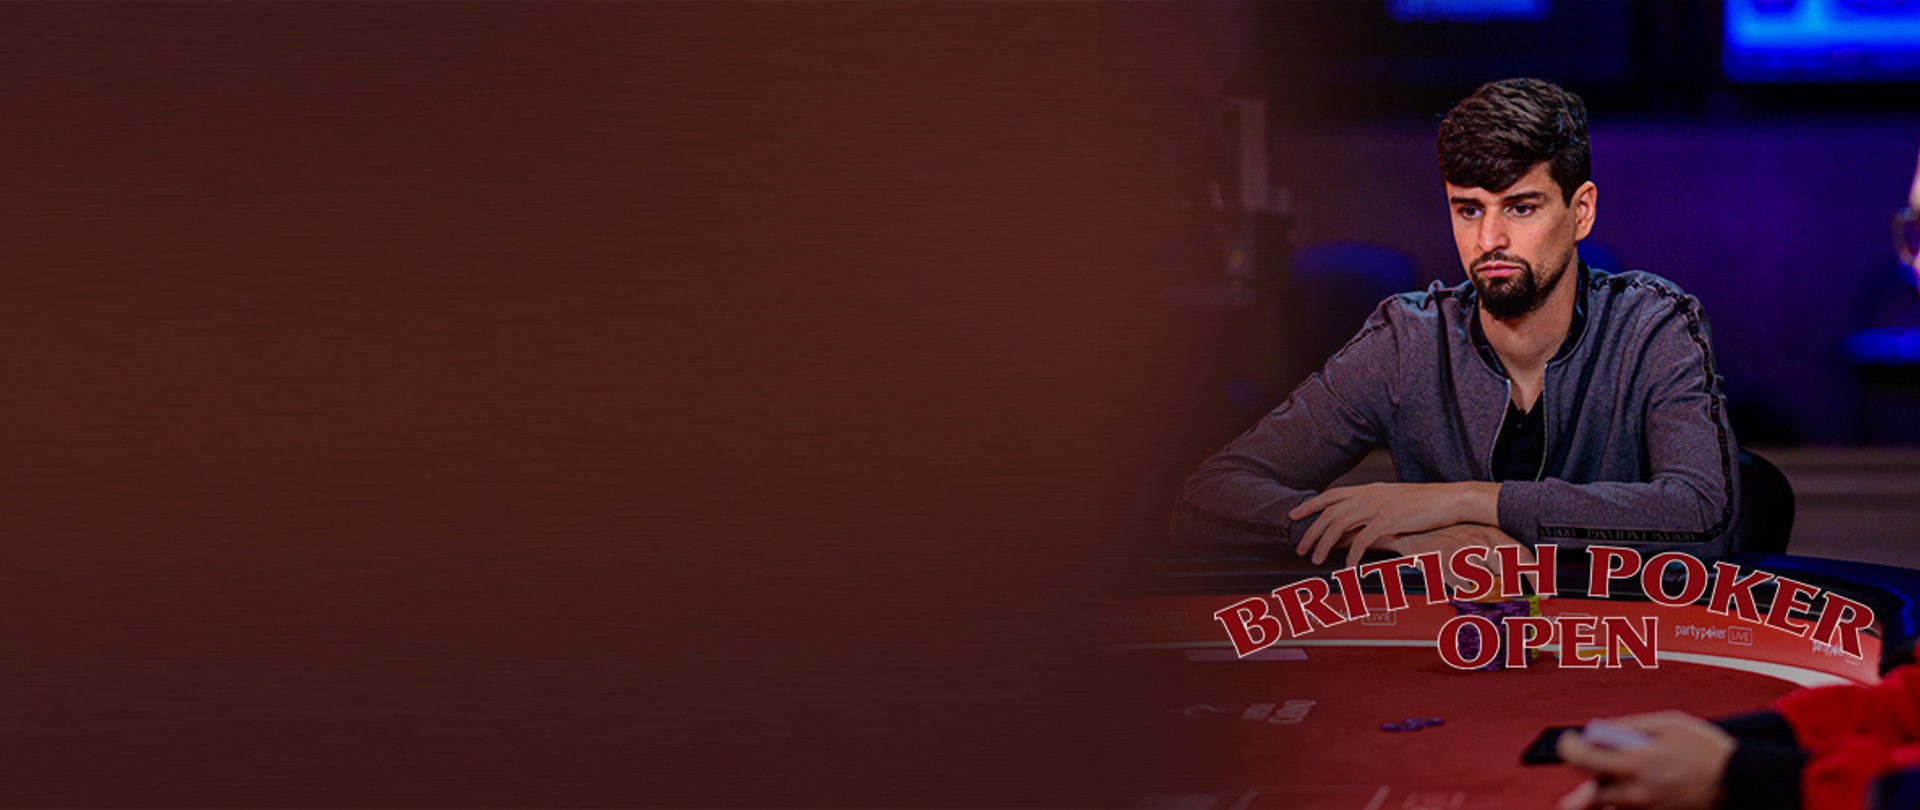 British Poker Open 2019 | Event #6 £25K NLH | Final Table